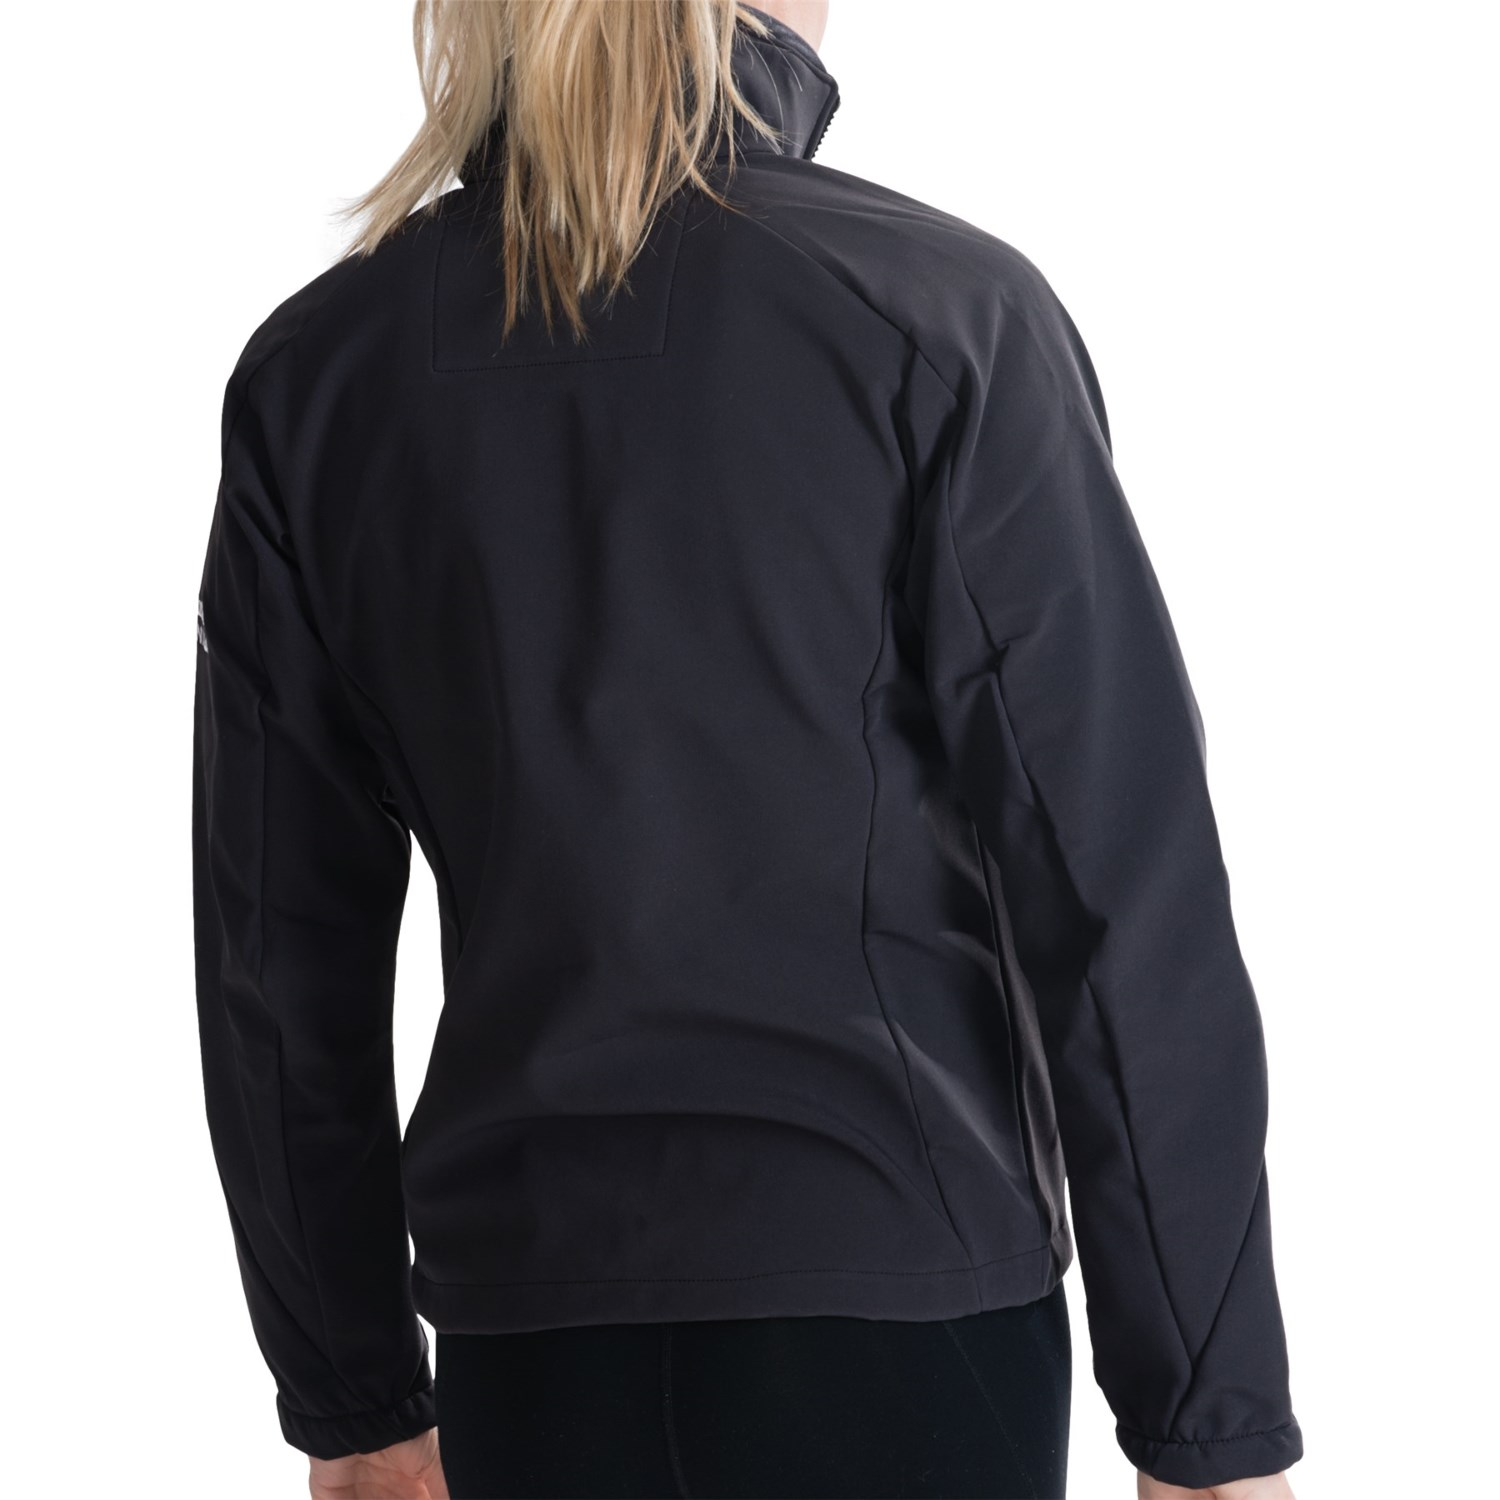 7297V_3 Columbia Sportswear Category Five Soft Shell Jacket (For Women